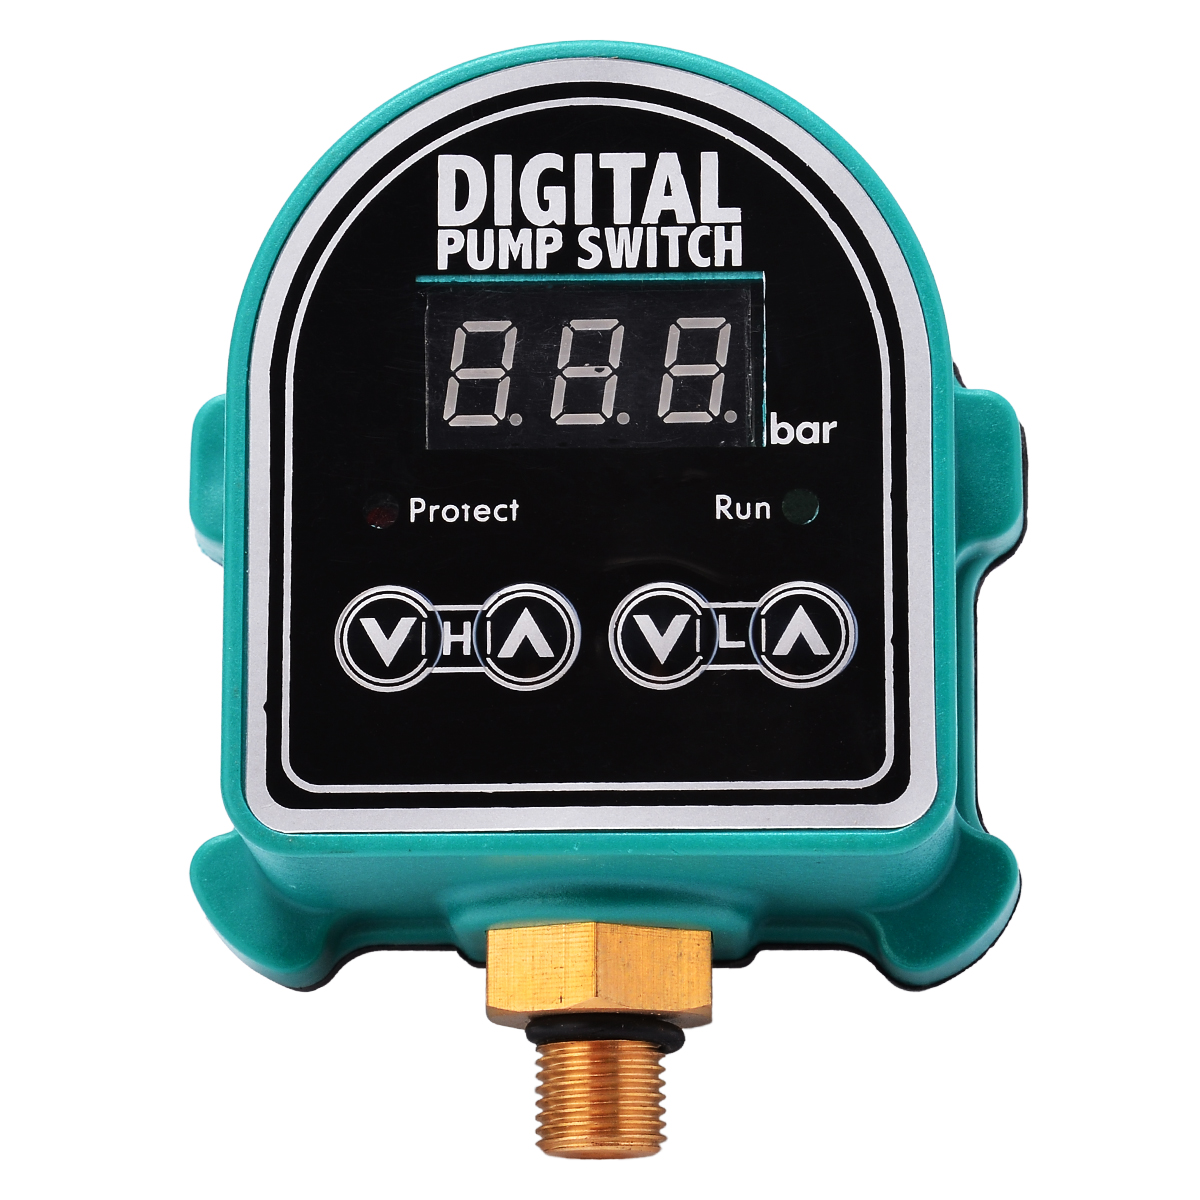 220V AC 10A Household Digital Pump Switch Garden Gas Water Pumps Controller Pressure Control Switch Automatic220V AC 10A Household Digital Pump Switch Garden Gas Water Pumps Controller Pressure Control Switch Automatic